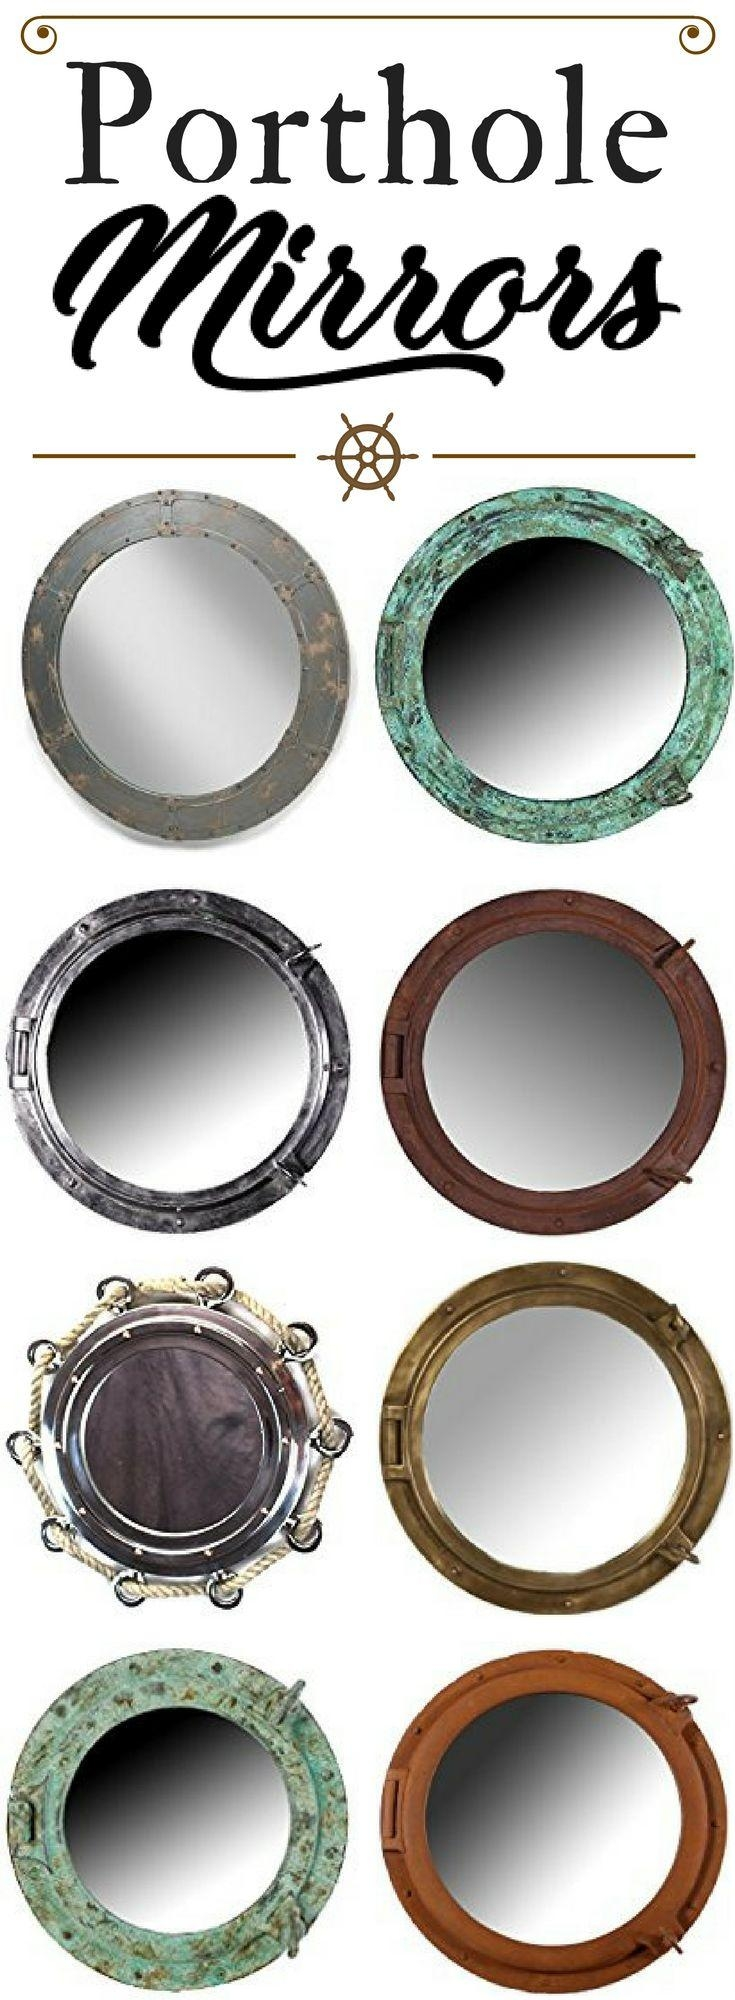 25+ Best Porthole Mirror Ideas On Pinterest | Nautical Mirror Throughout Porthole Mirrors For Sale (Image 2 of 20)